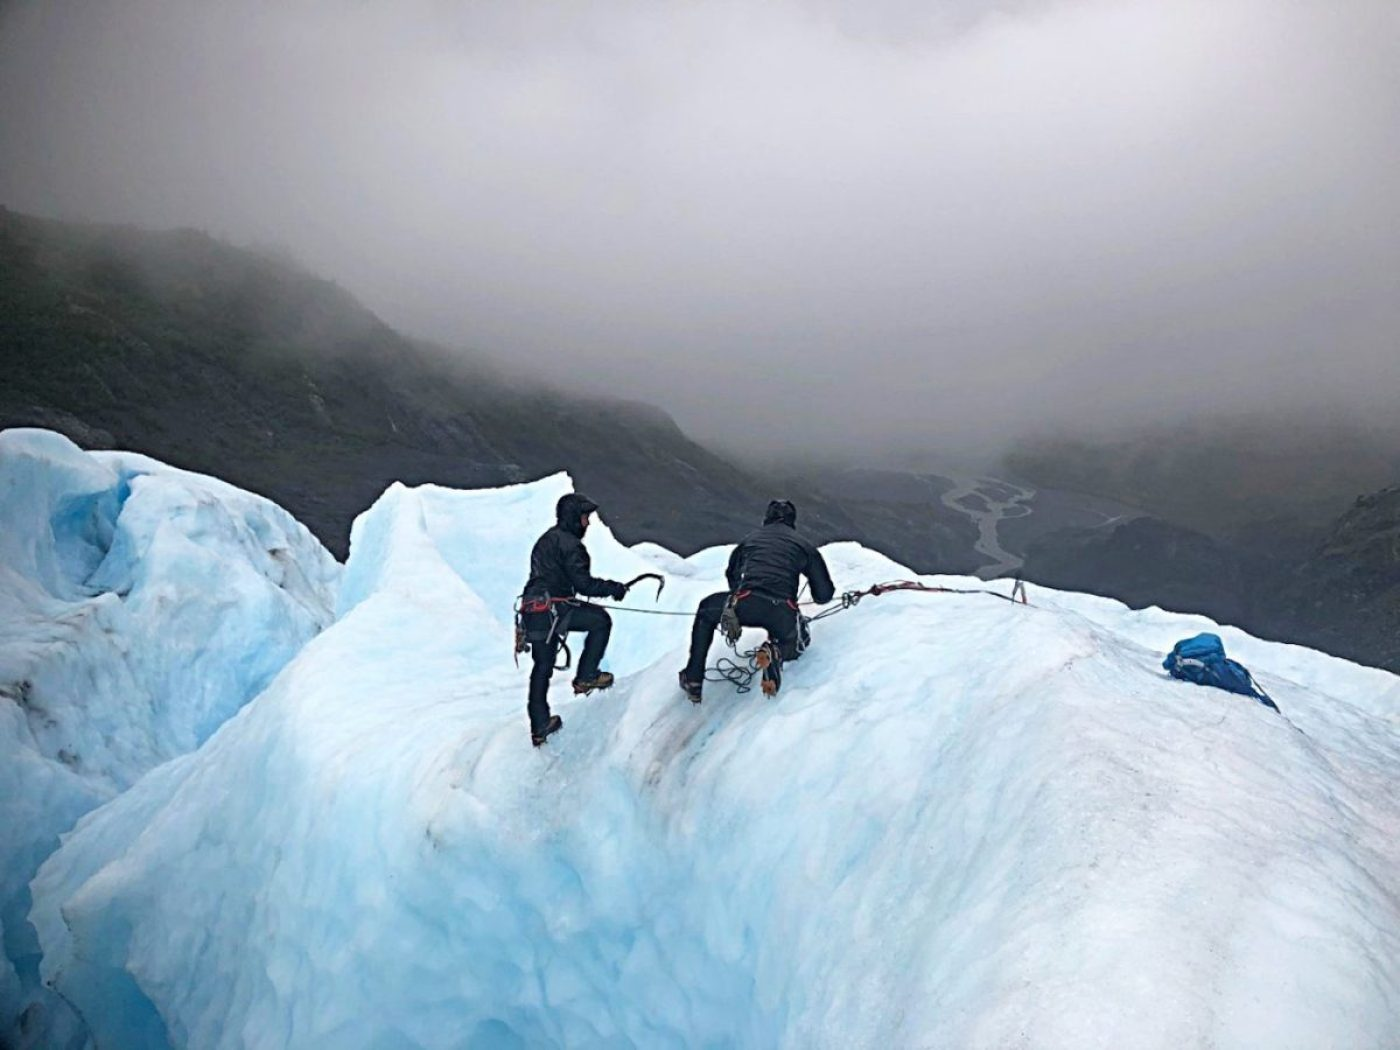 Green Berets with 1st Special Forces Group (Airborne) practices self-recovery from a glacial crevasse during Valor United 20, an arctic warfare training exercise in Seward, Alaska. During the September 2020 exercise, Special Forces and conventional soldiers alike developed their patrolling and survival skills in some of the most unforgiving terrain in the U.S. Key focus areas for the training were arctic, alpine and glacier movement, crevasse rescue, and long-range high-frequency communications. In addition to training, the 1st SFG (A) team assisted 212th Rescue Squadron with wilderness search and rescue operations. (1st Special Forces Group photo by Sgt. Kayla Hocker)